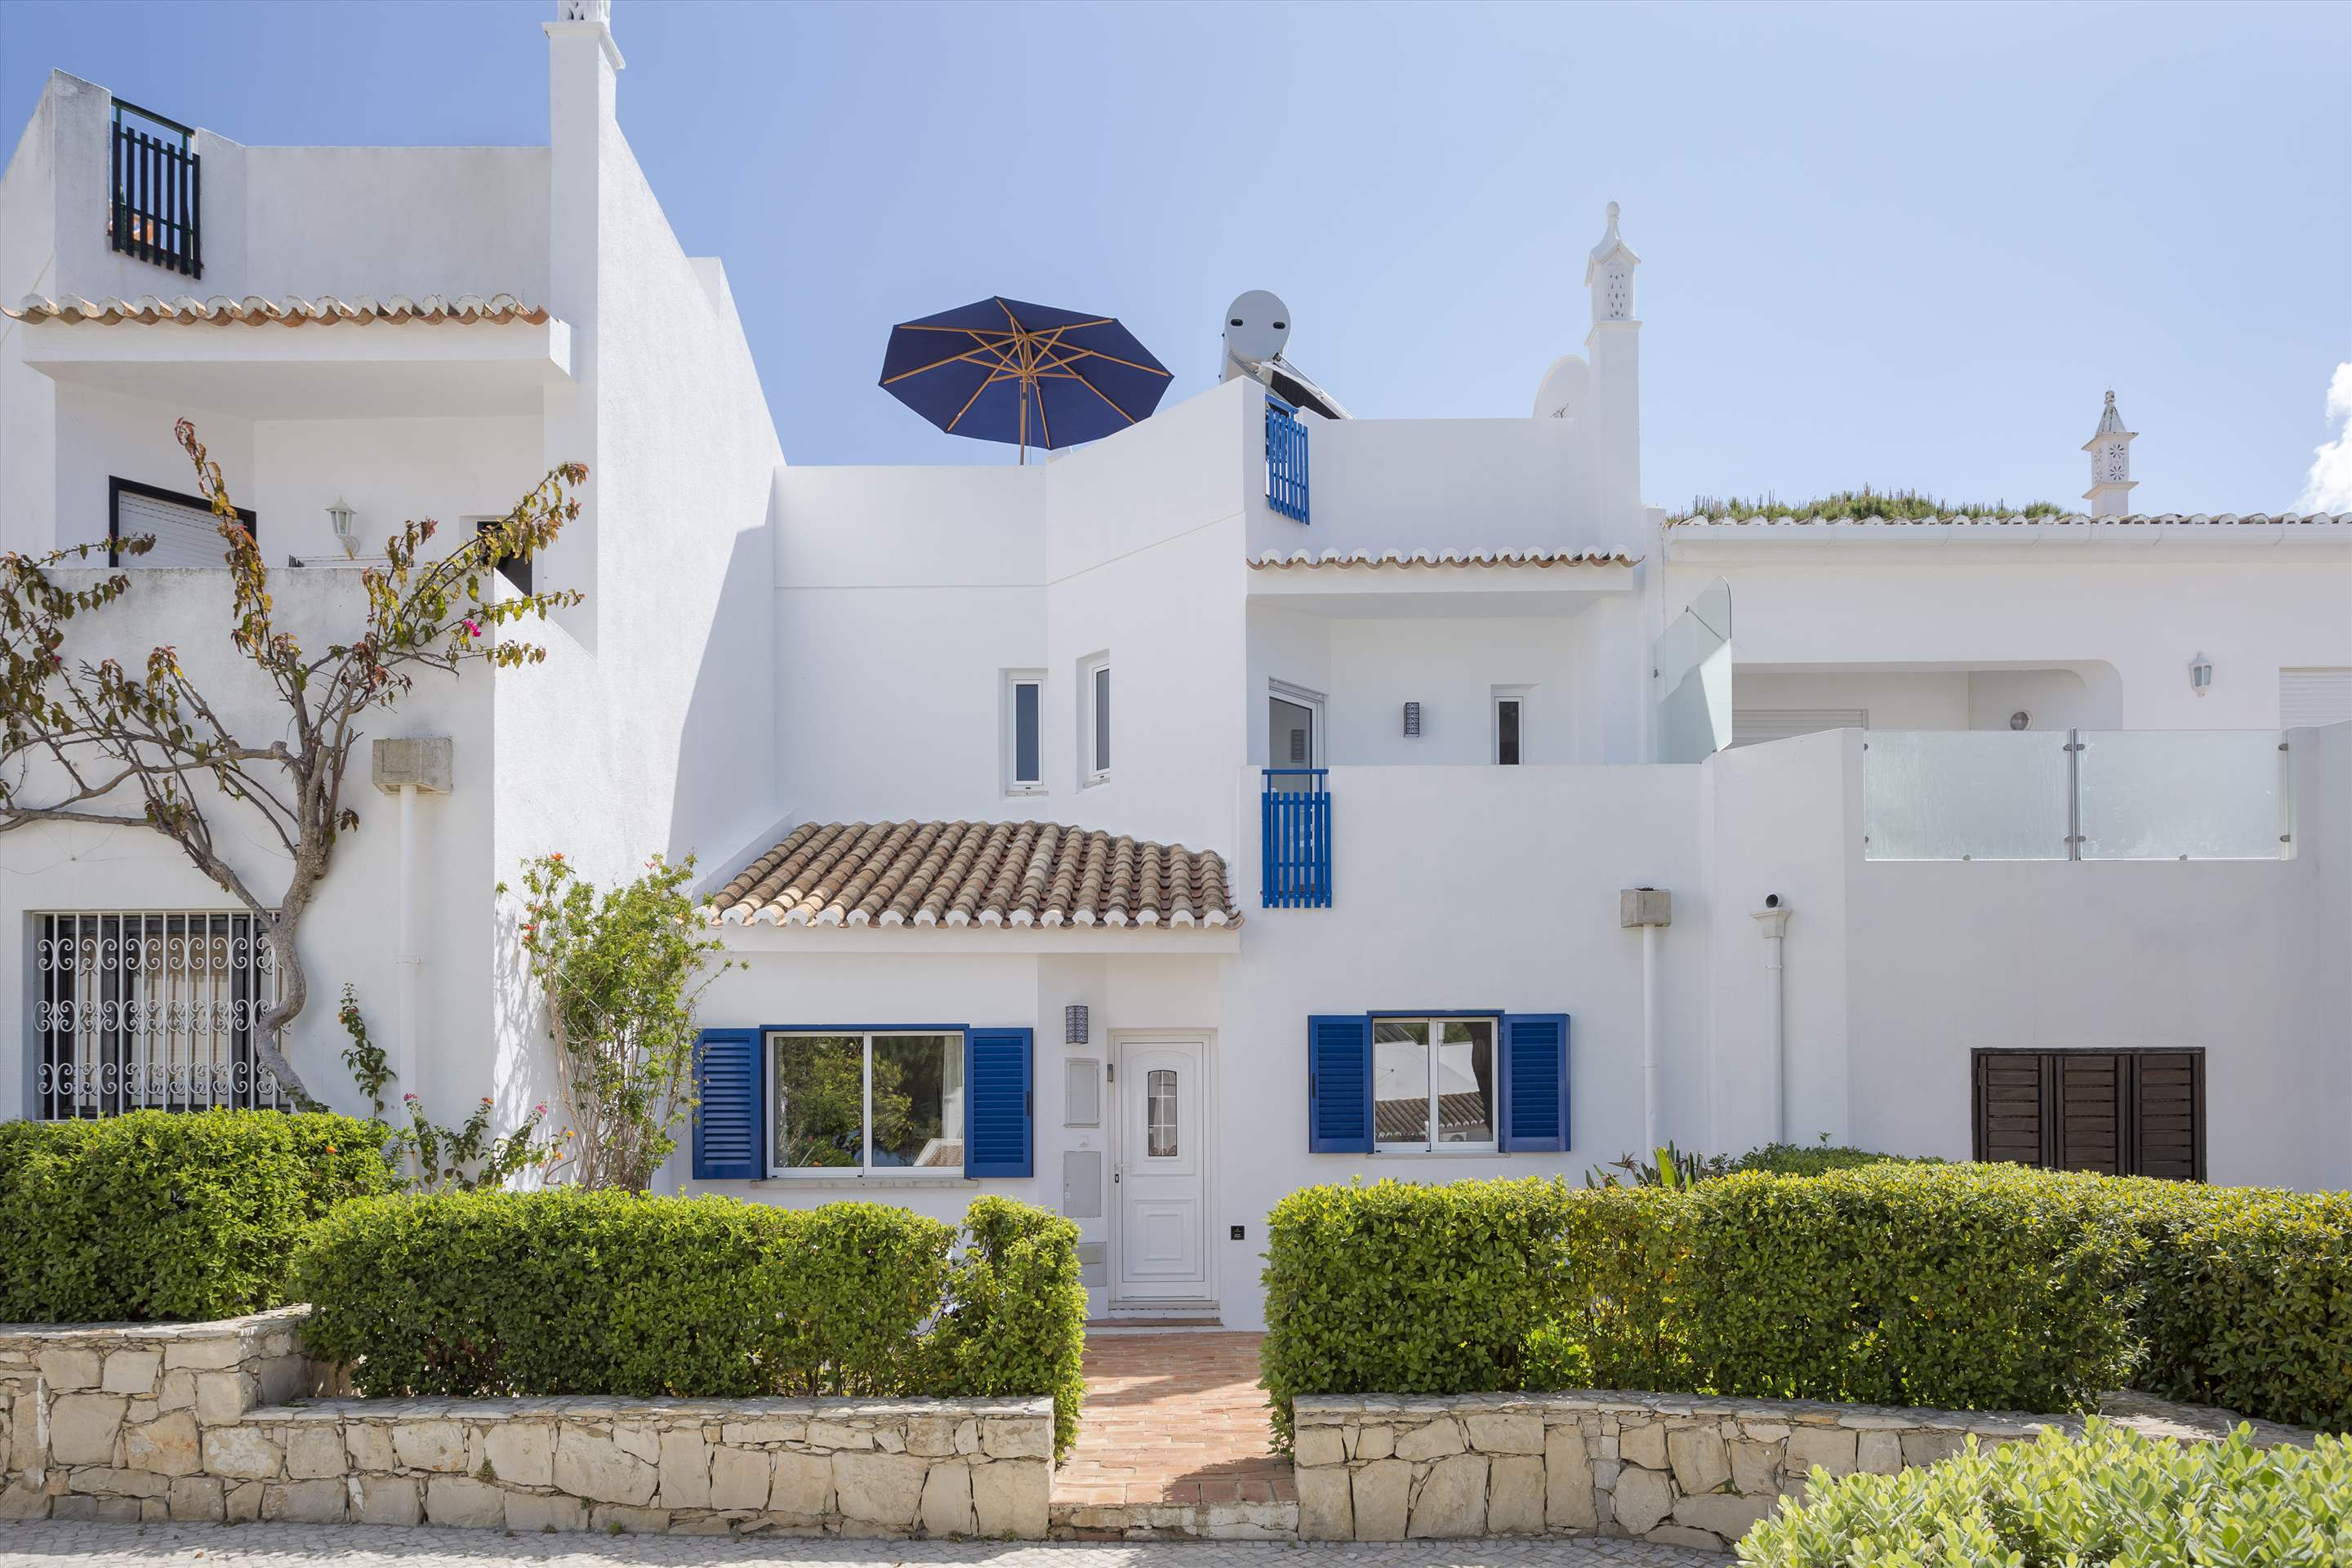 Townhouse Megan, 3 bedroom villa in Vale do Lobo, Algarve Photo #1